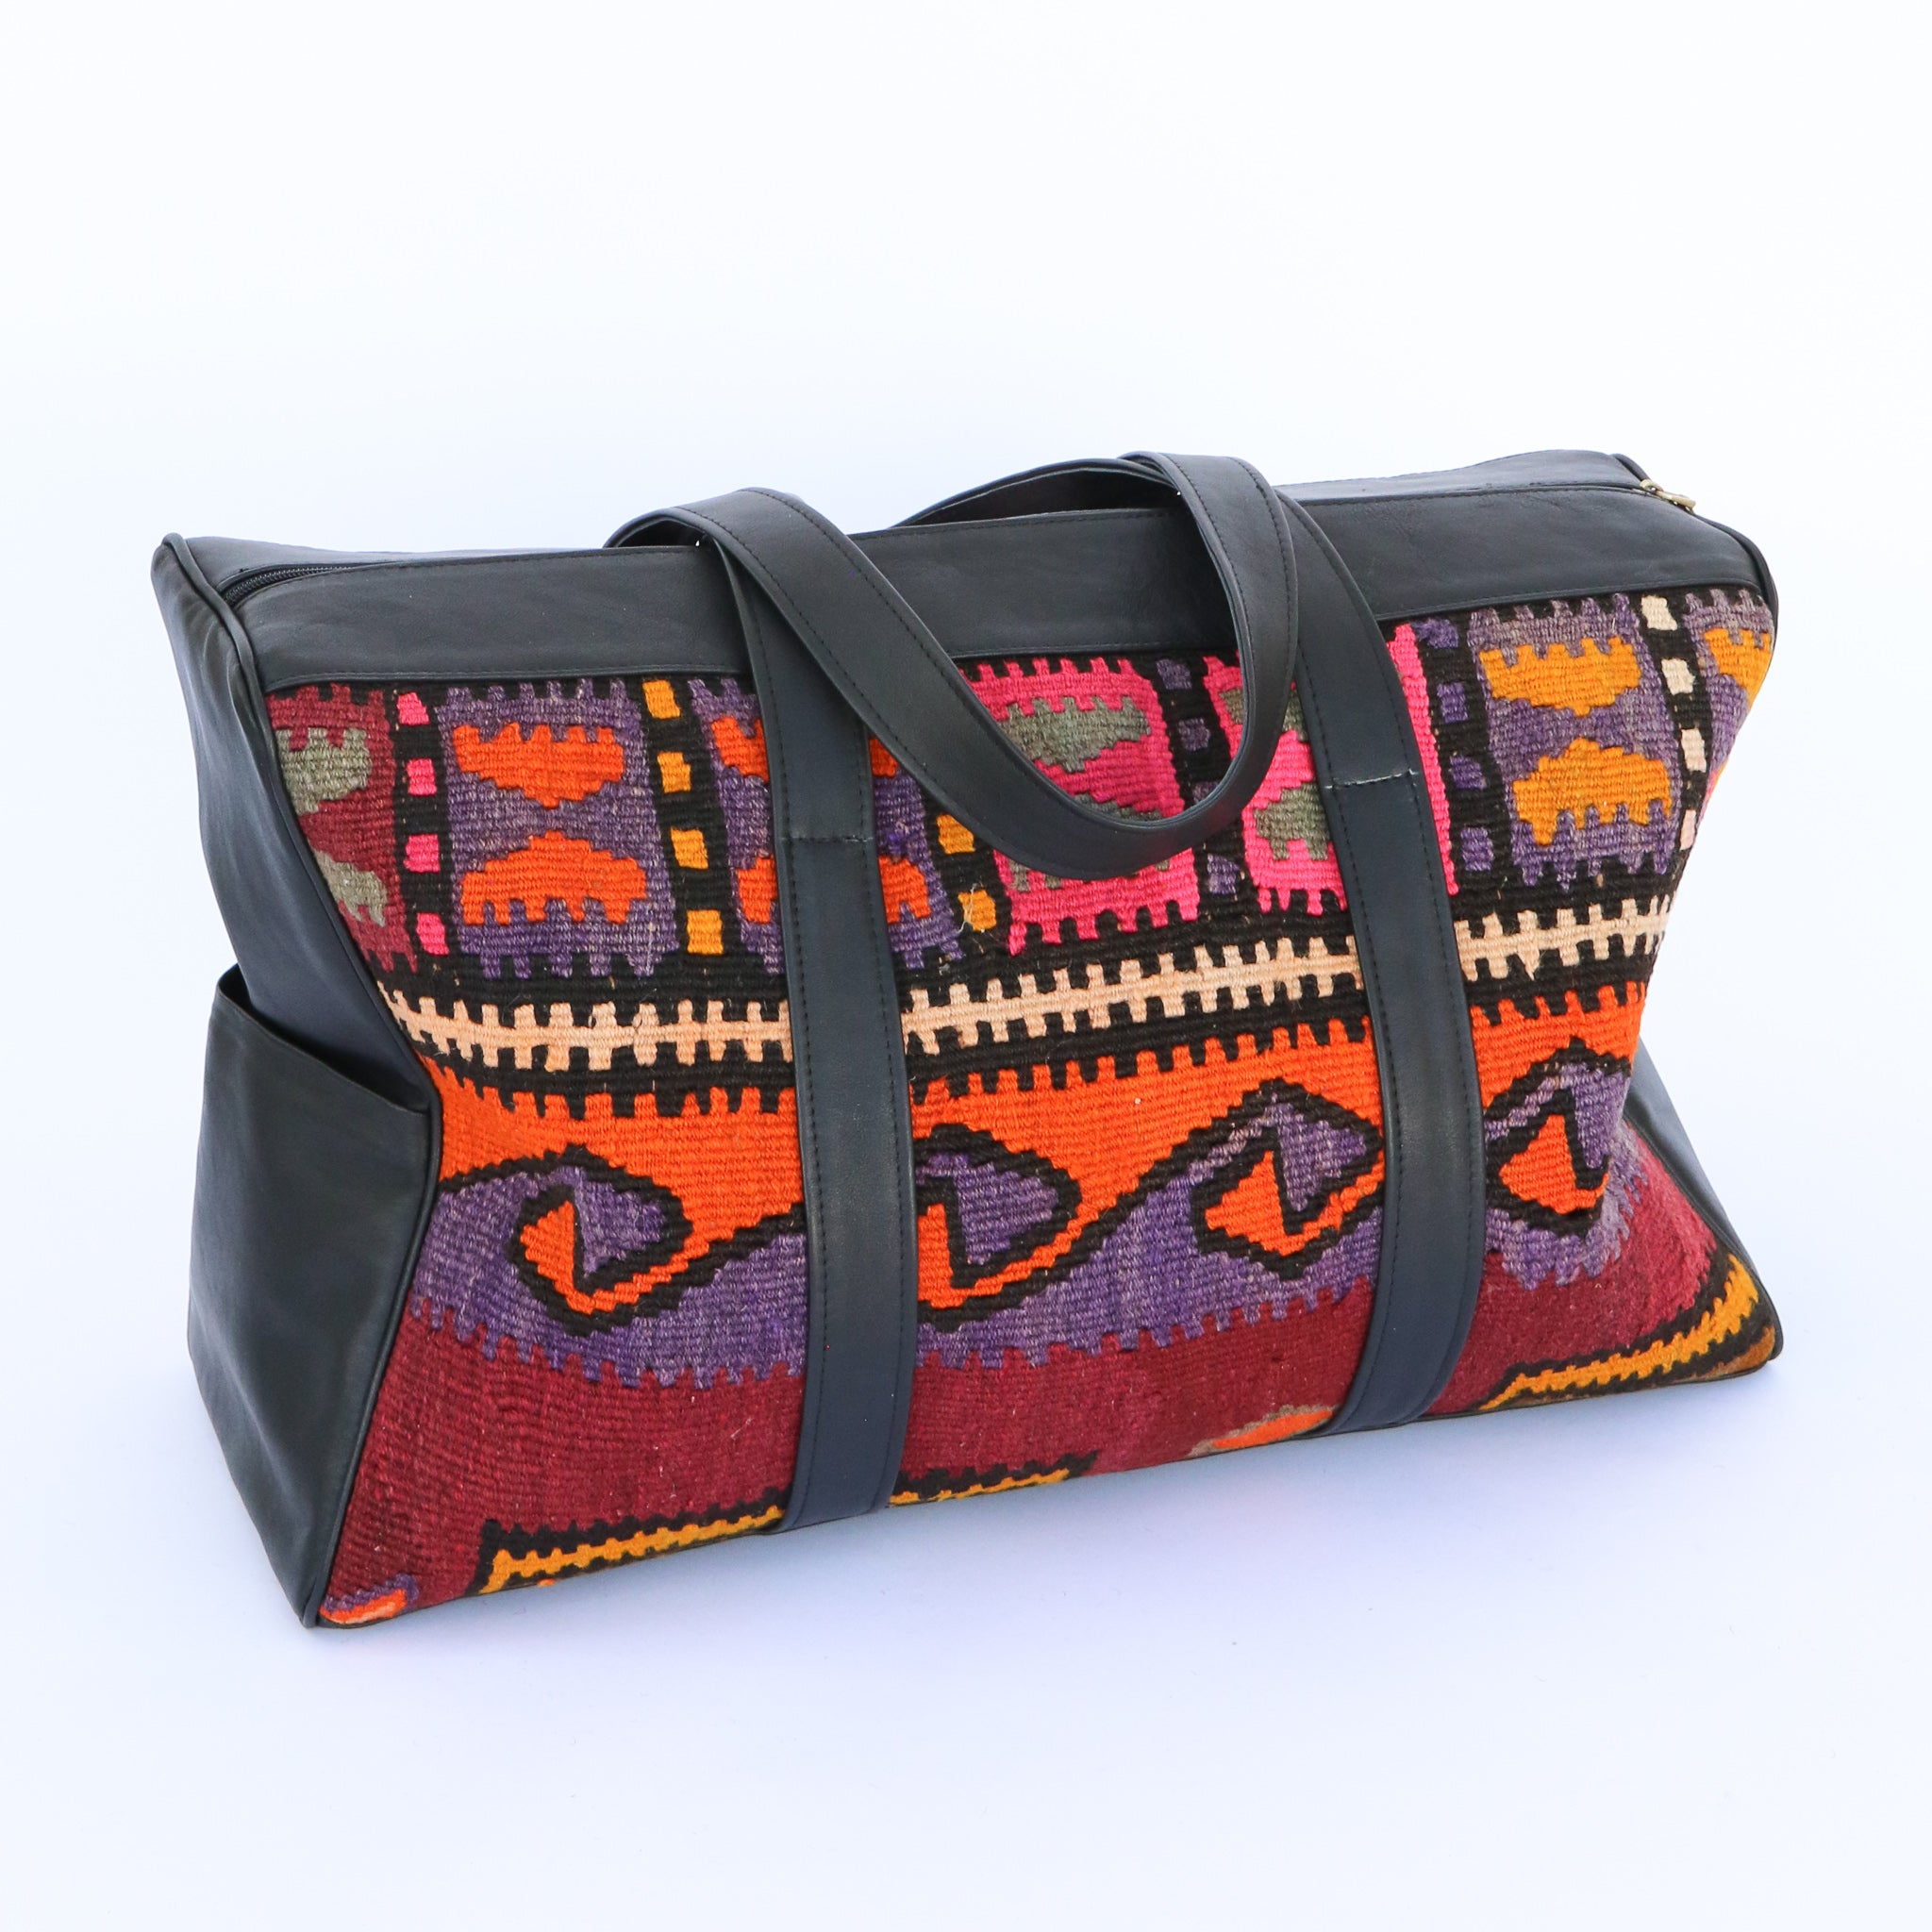 Kilim & Leather Overnight Bag #33 (w/ side pockets)